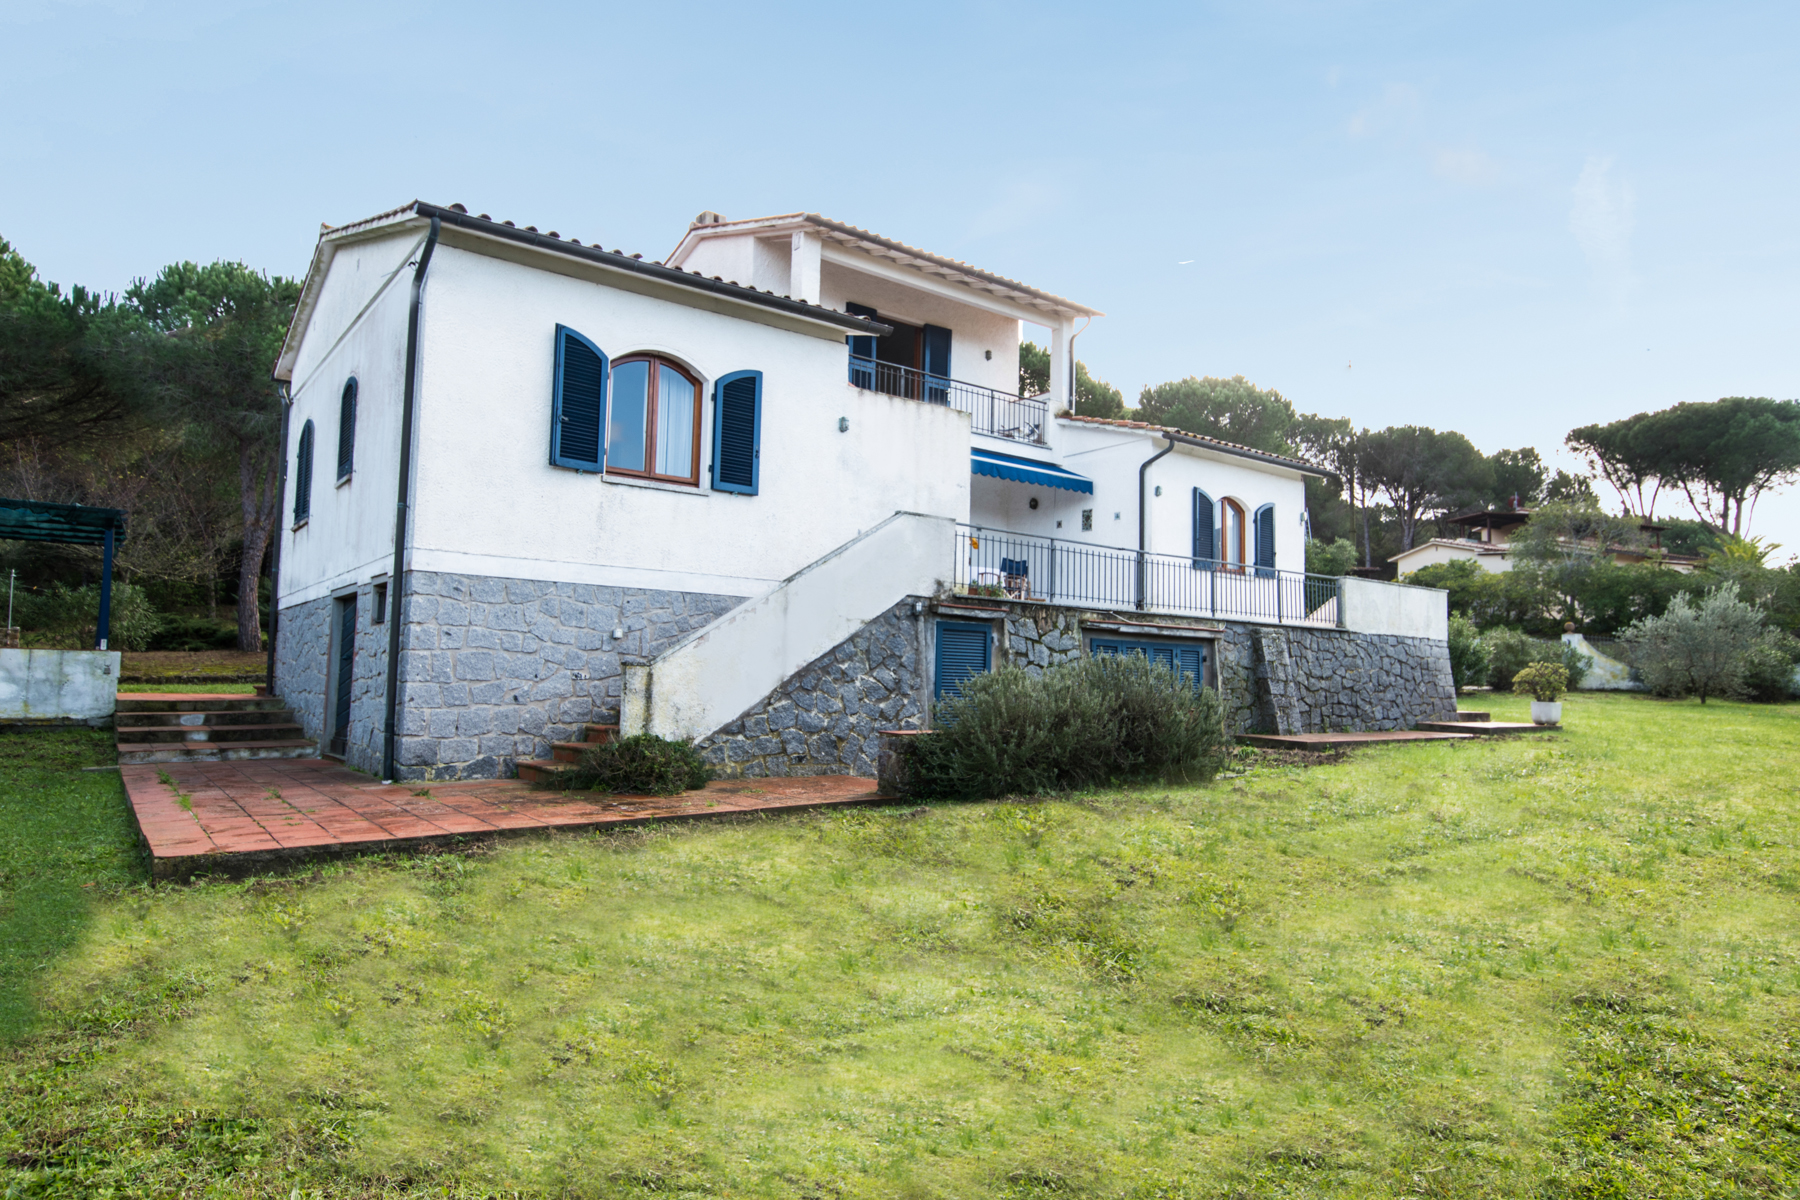 Additional photo for property listing at Detached villa nestled within fenced garden Via di Campo all'Aia Marciana, Livorno 57033 Italy